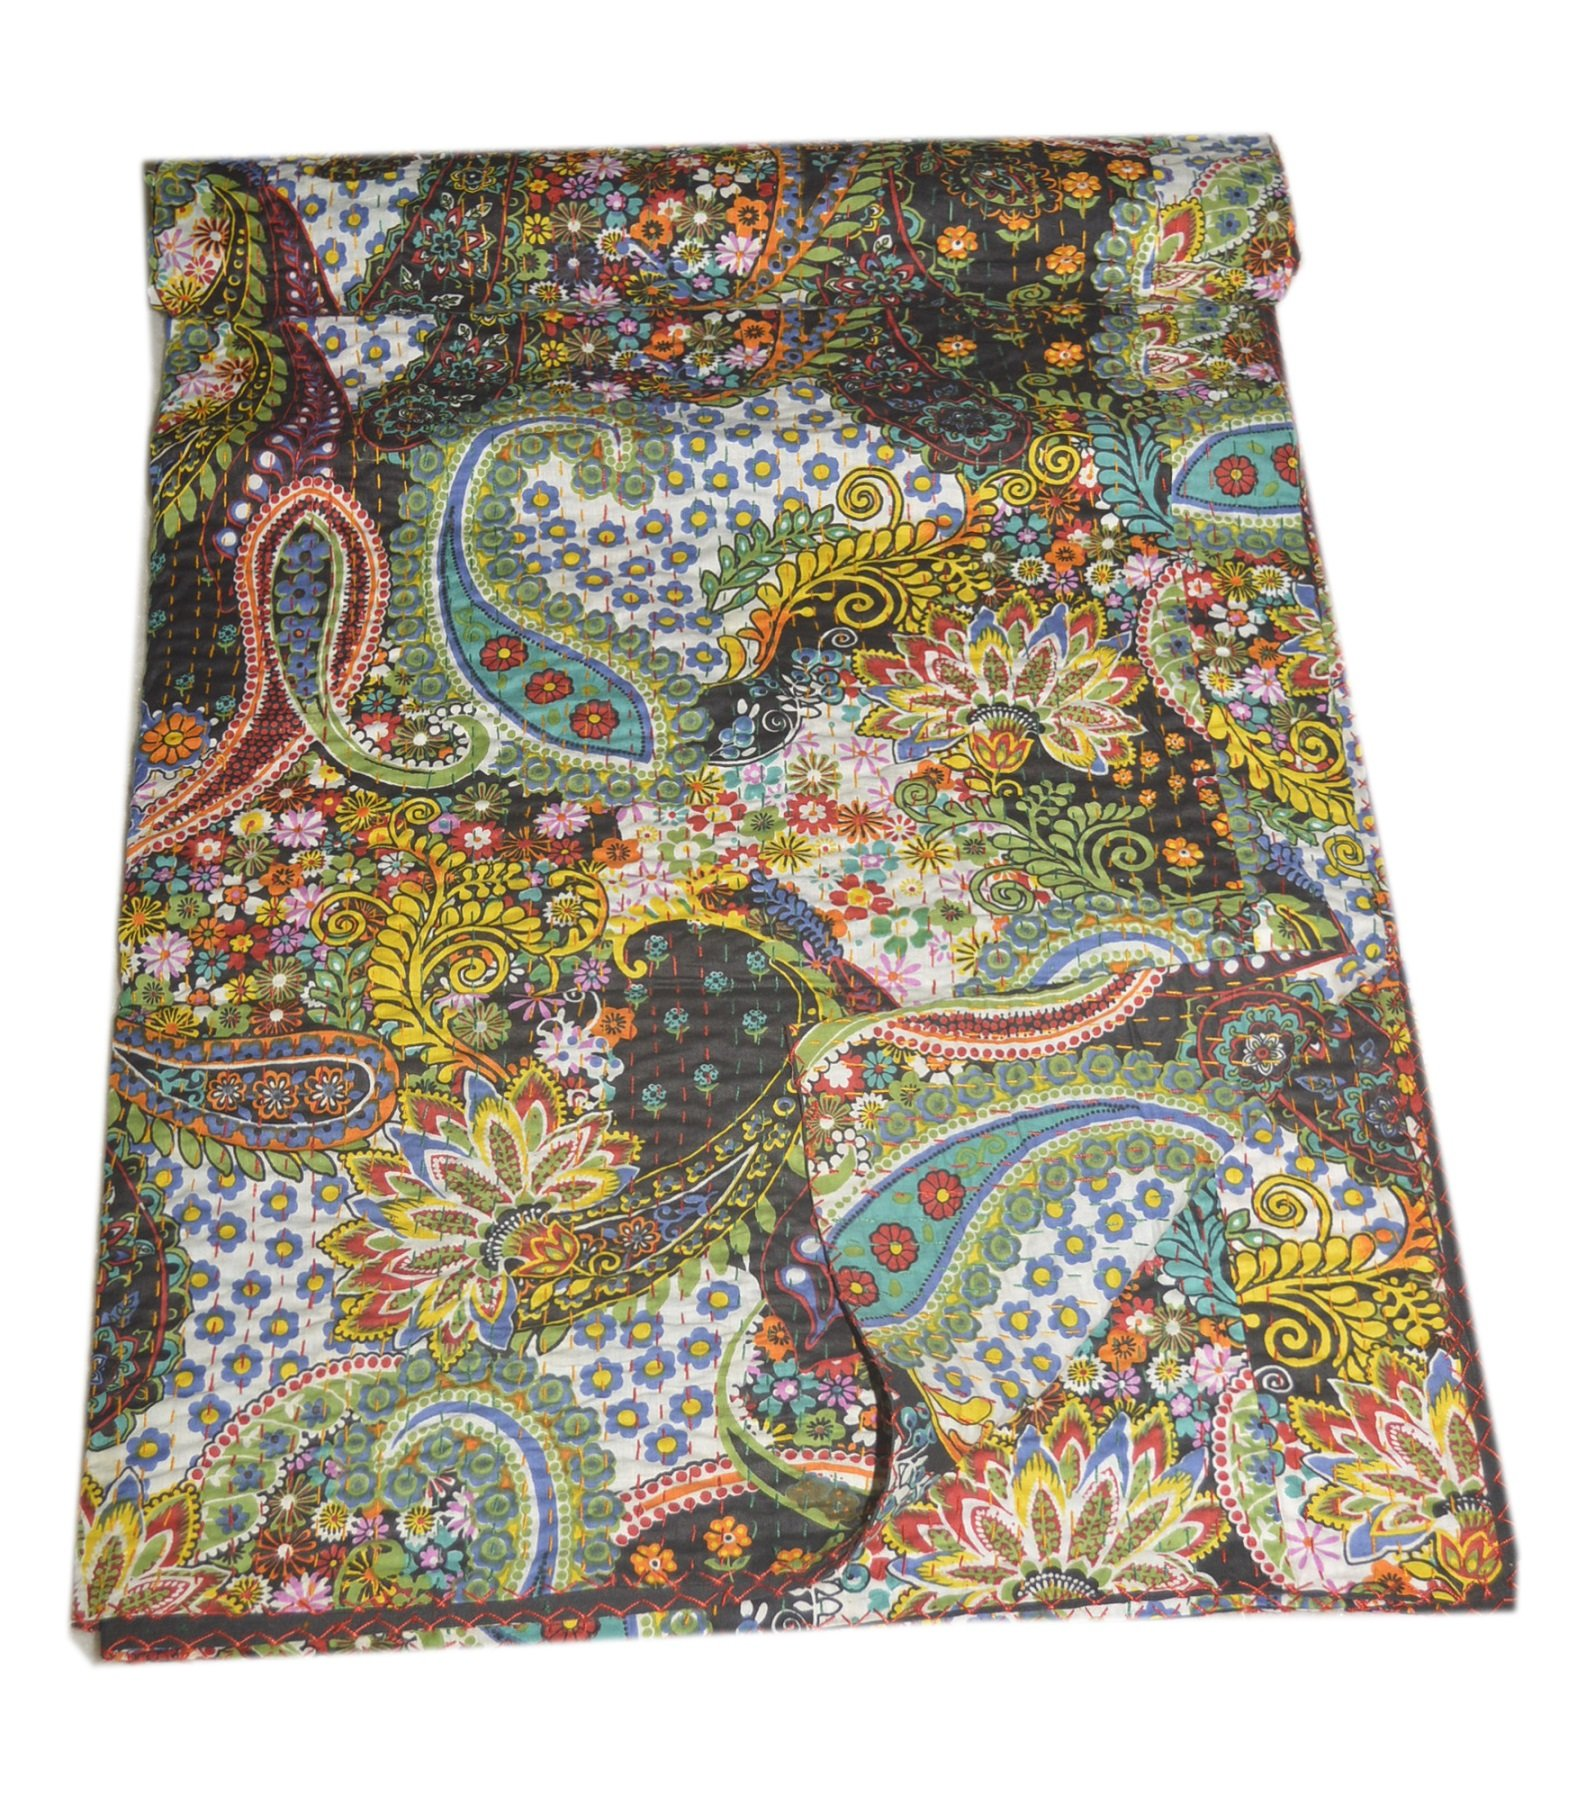 Tribal Asian Textiles Queen Kantha Quilt In Black paisley, Kantha Blanket Bedding Bedspread Throw by Tribal Asian Textiles (Image #1)